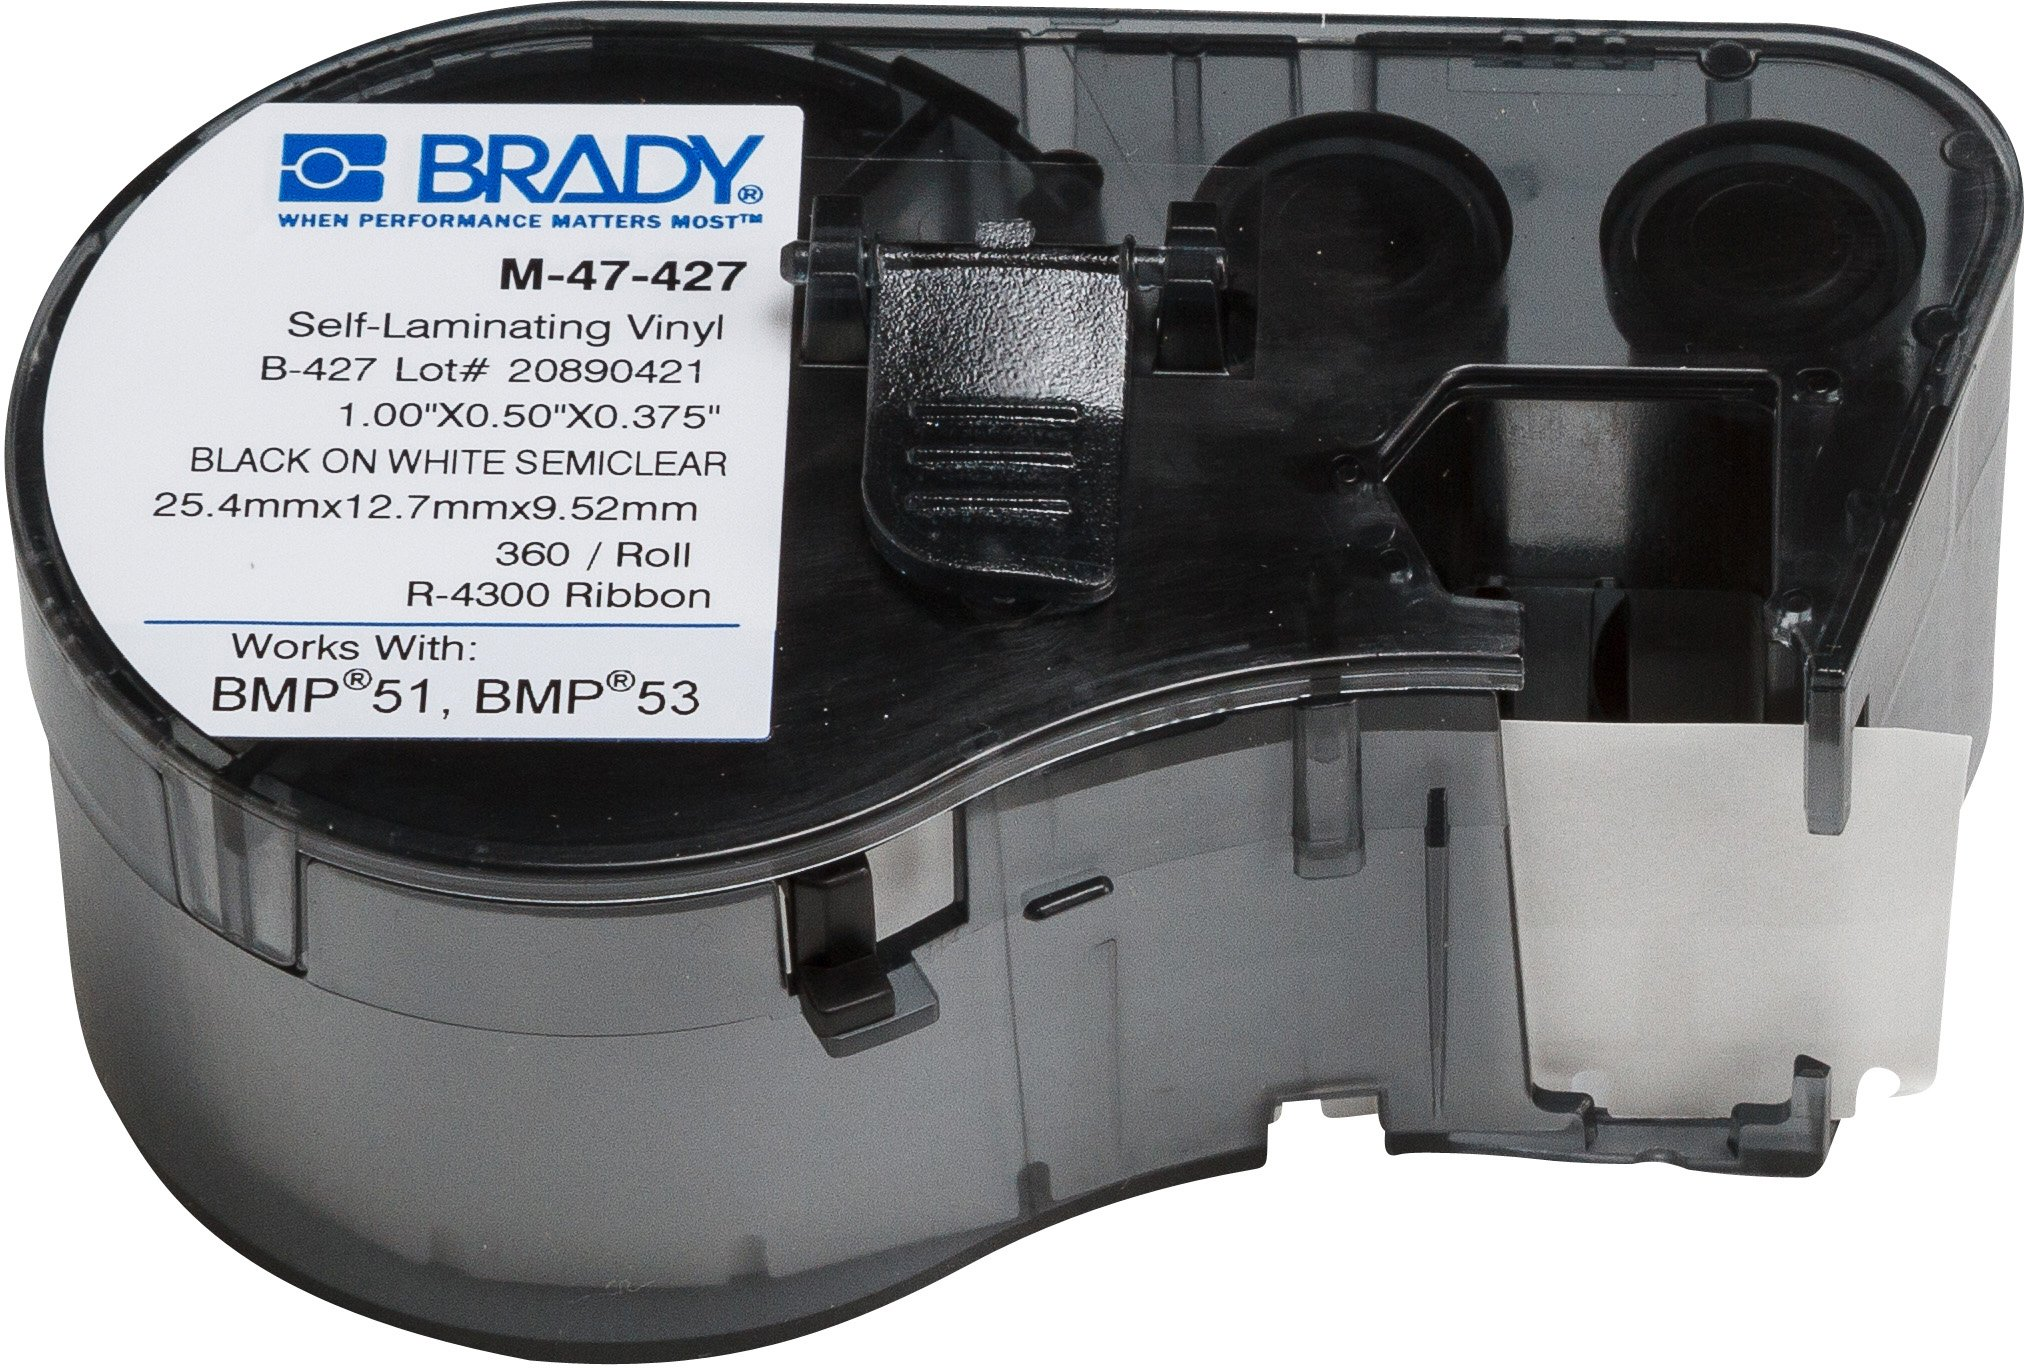 Brady M-47-427 Labels for BMP53/BMP51 Printers